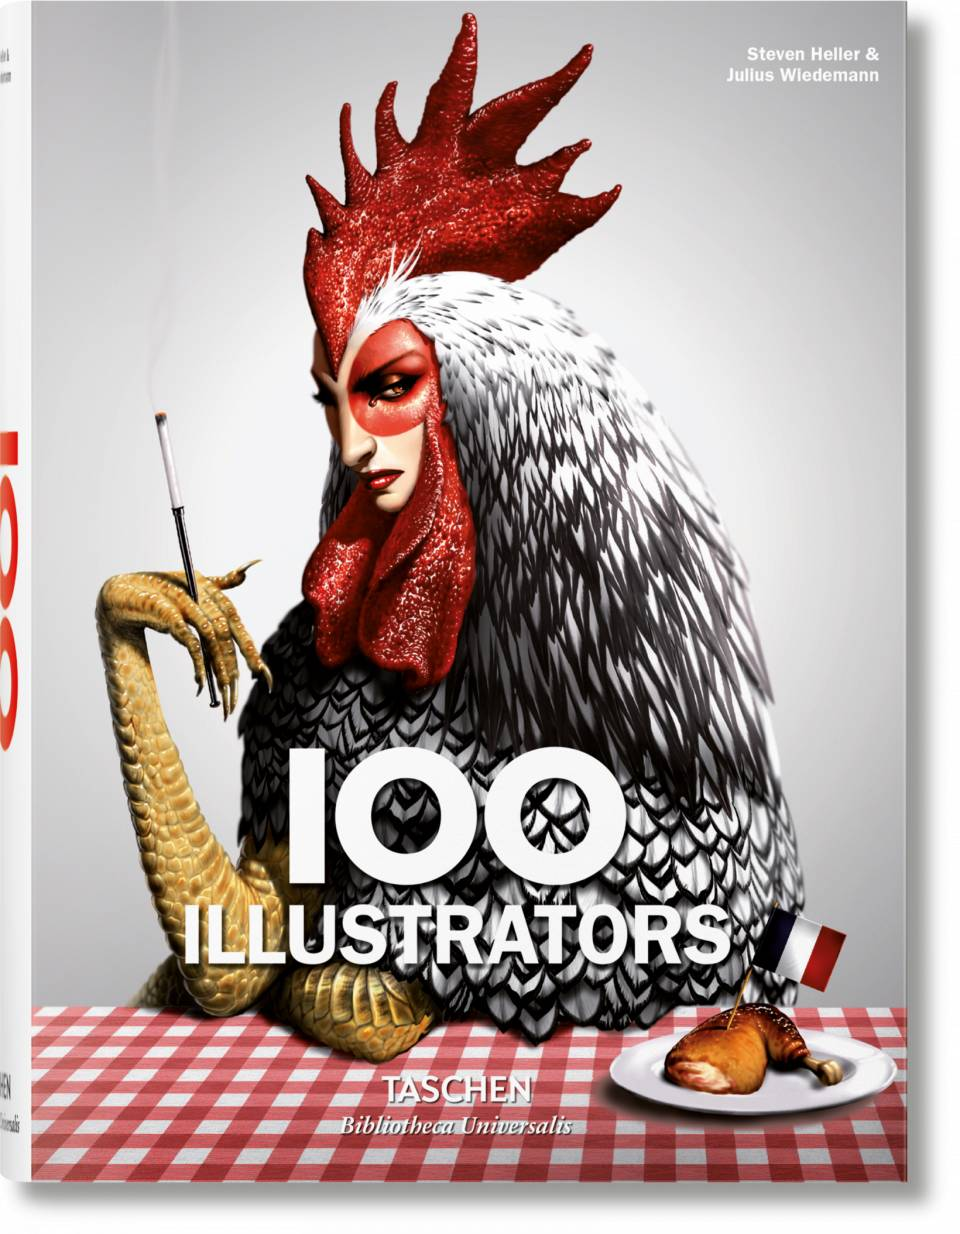 100 Illustrators - image 1